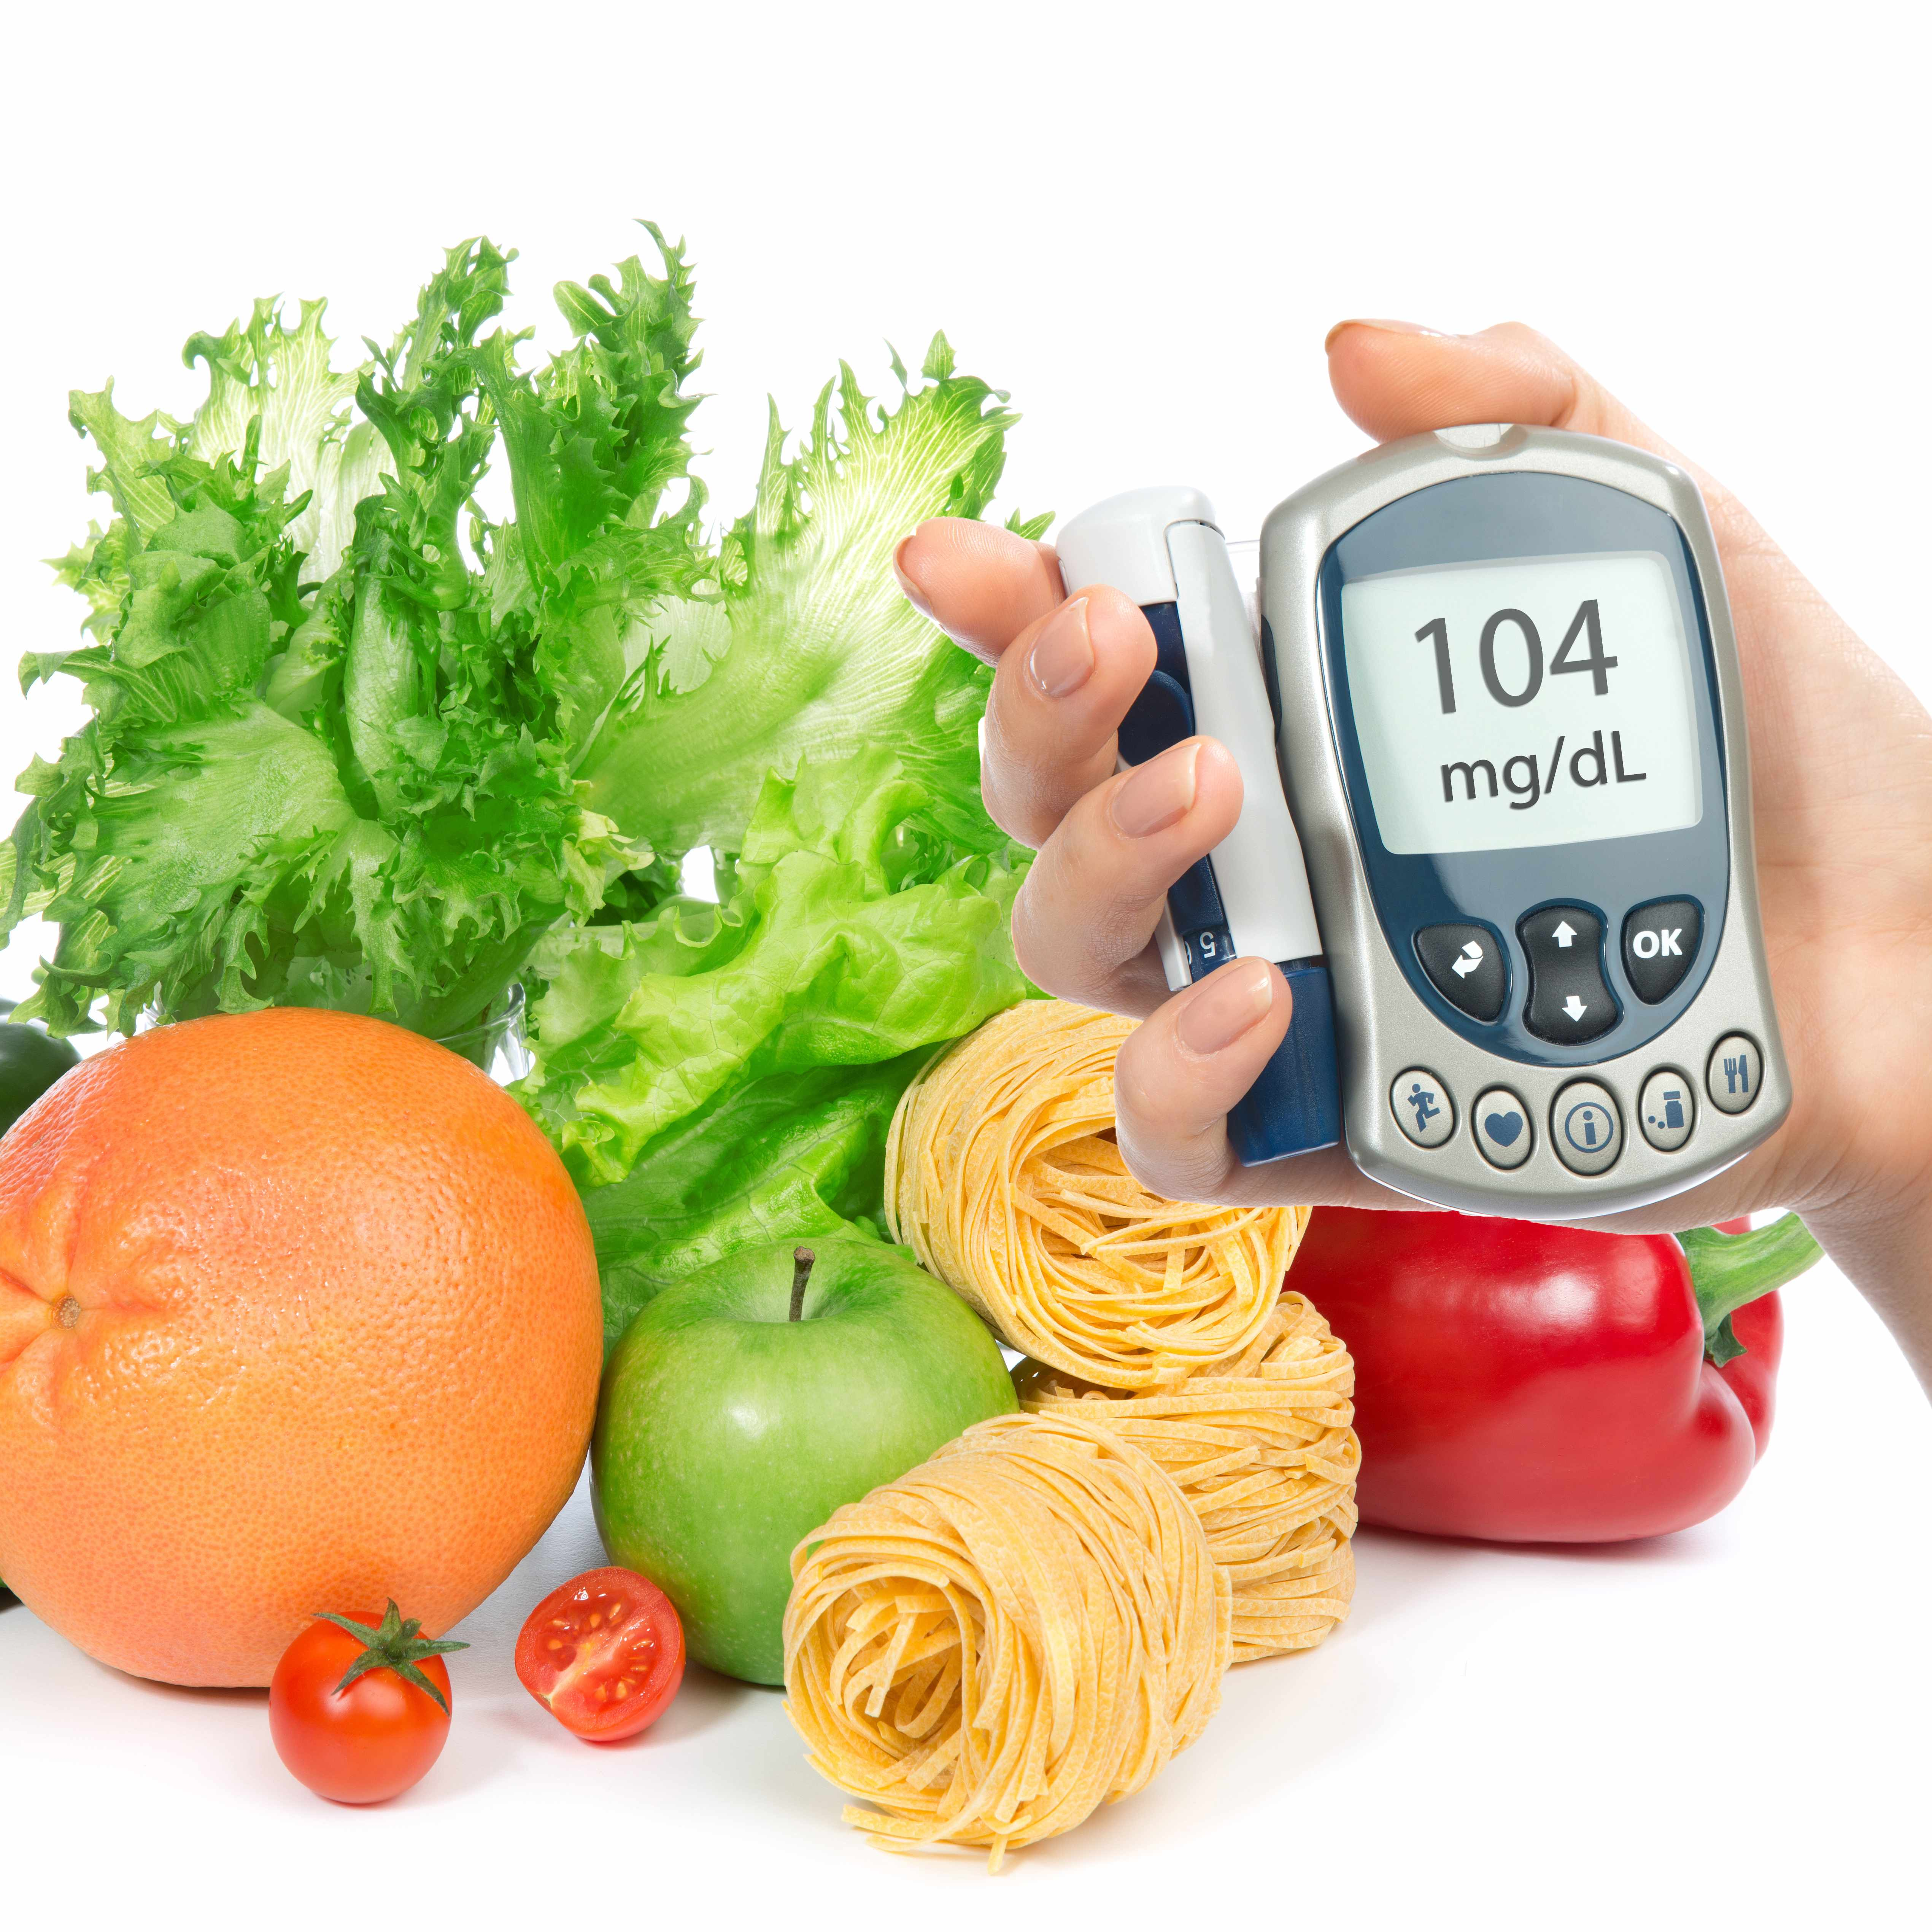 a hand holding a glucose meter in front of a variety of fruits, vegetables and pasta